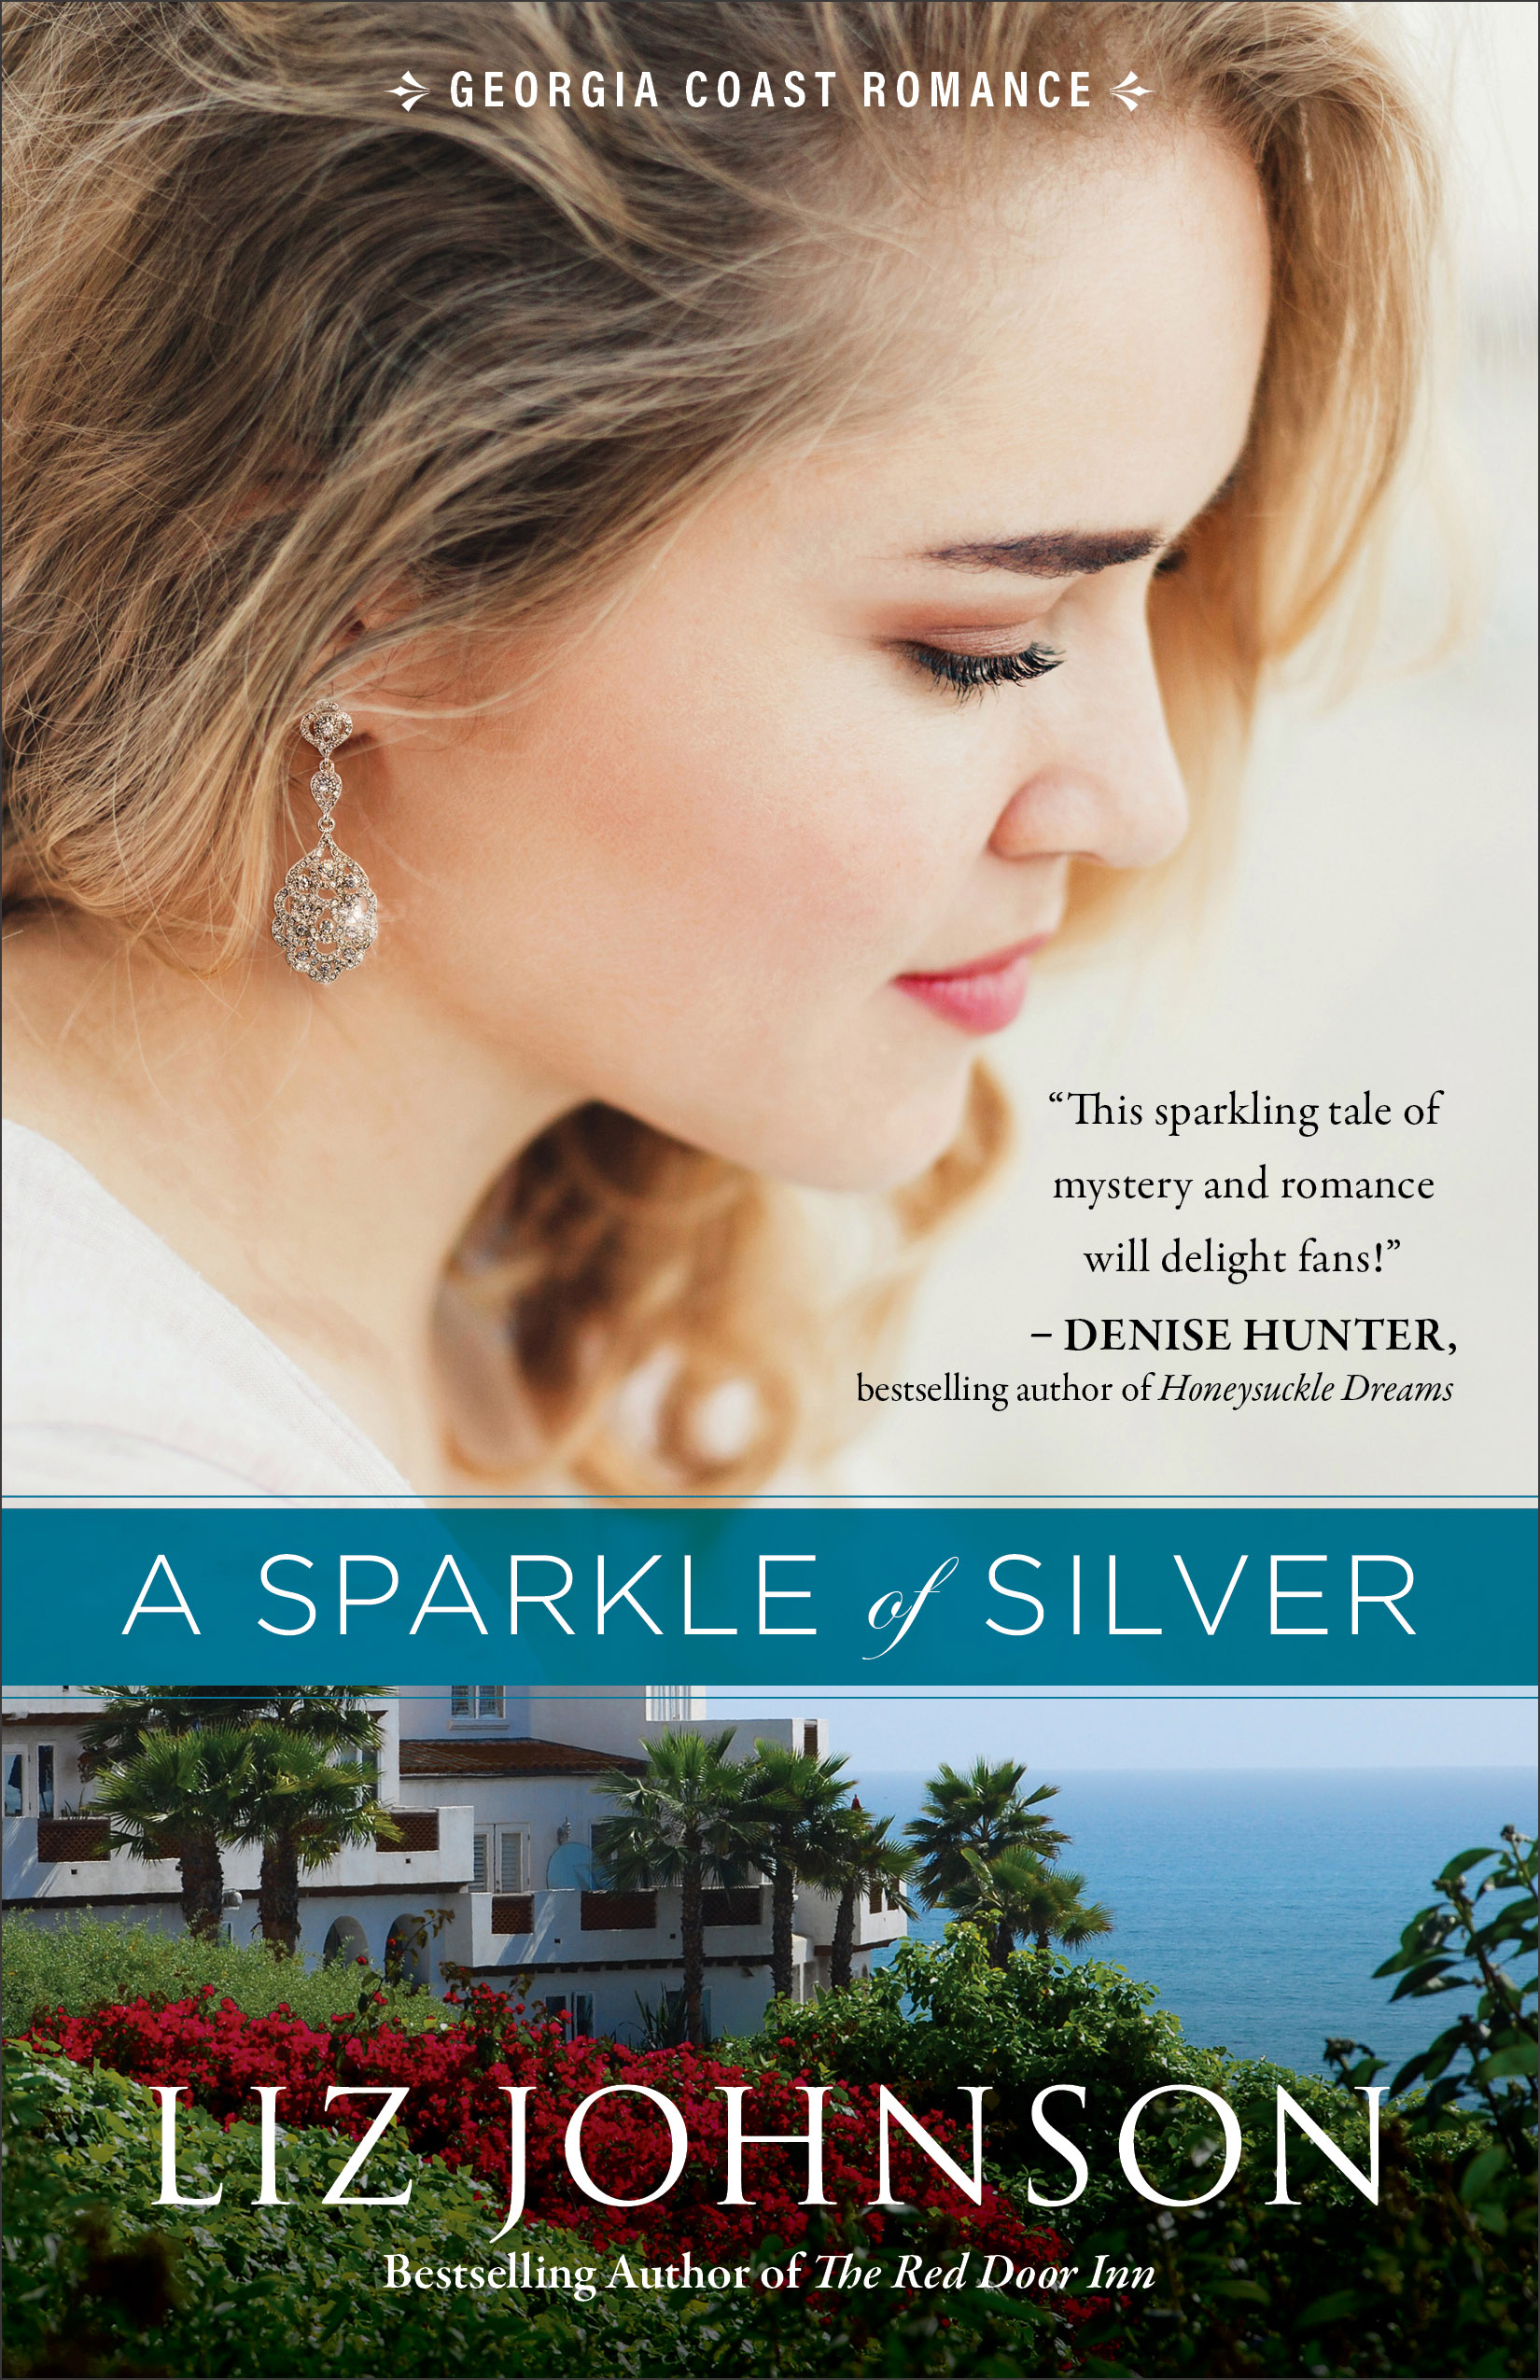 Book review of A Sparkle of Silver by Liz Johnson (Revell) by papertapepins